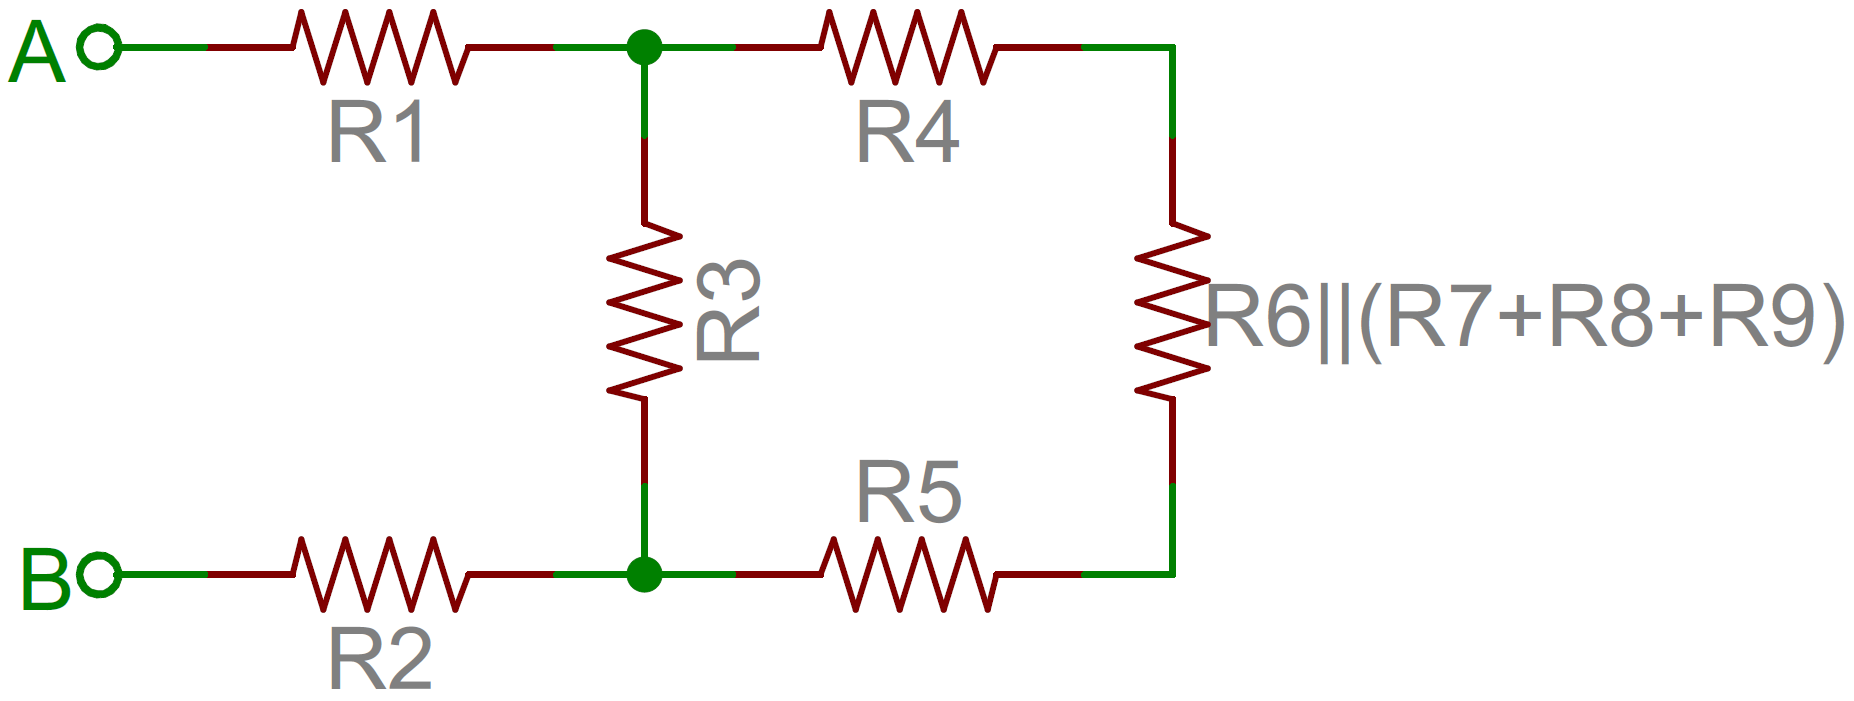 Resistors The Breadboard Circuit Of Above Is Shown Below Making Our Resistor Network Simplified